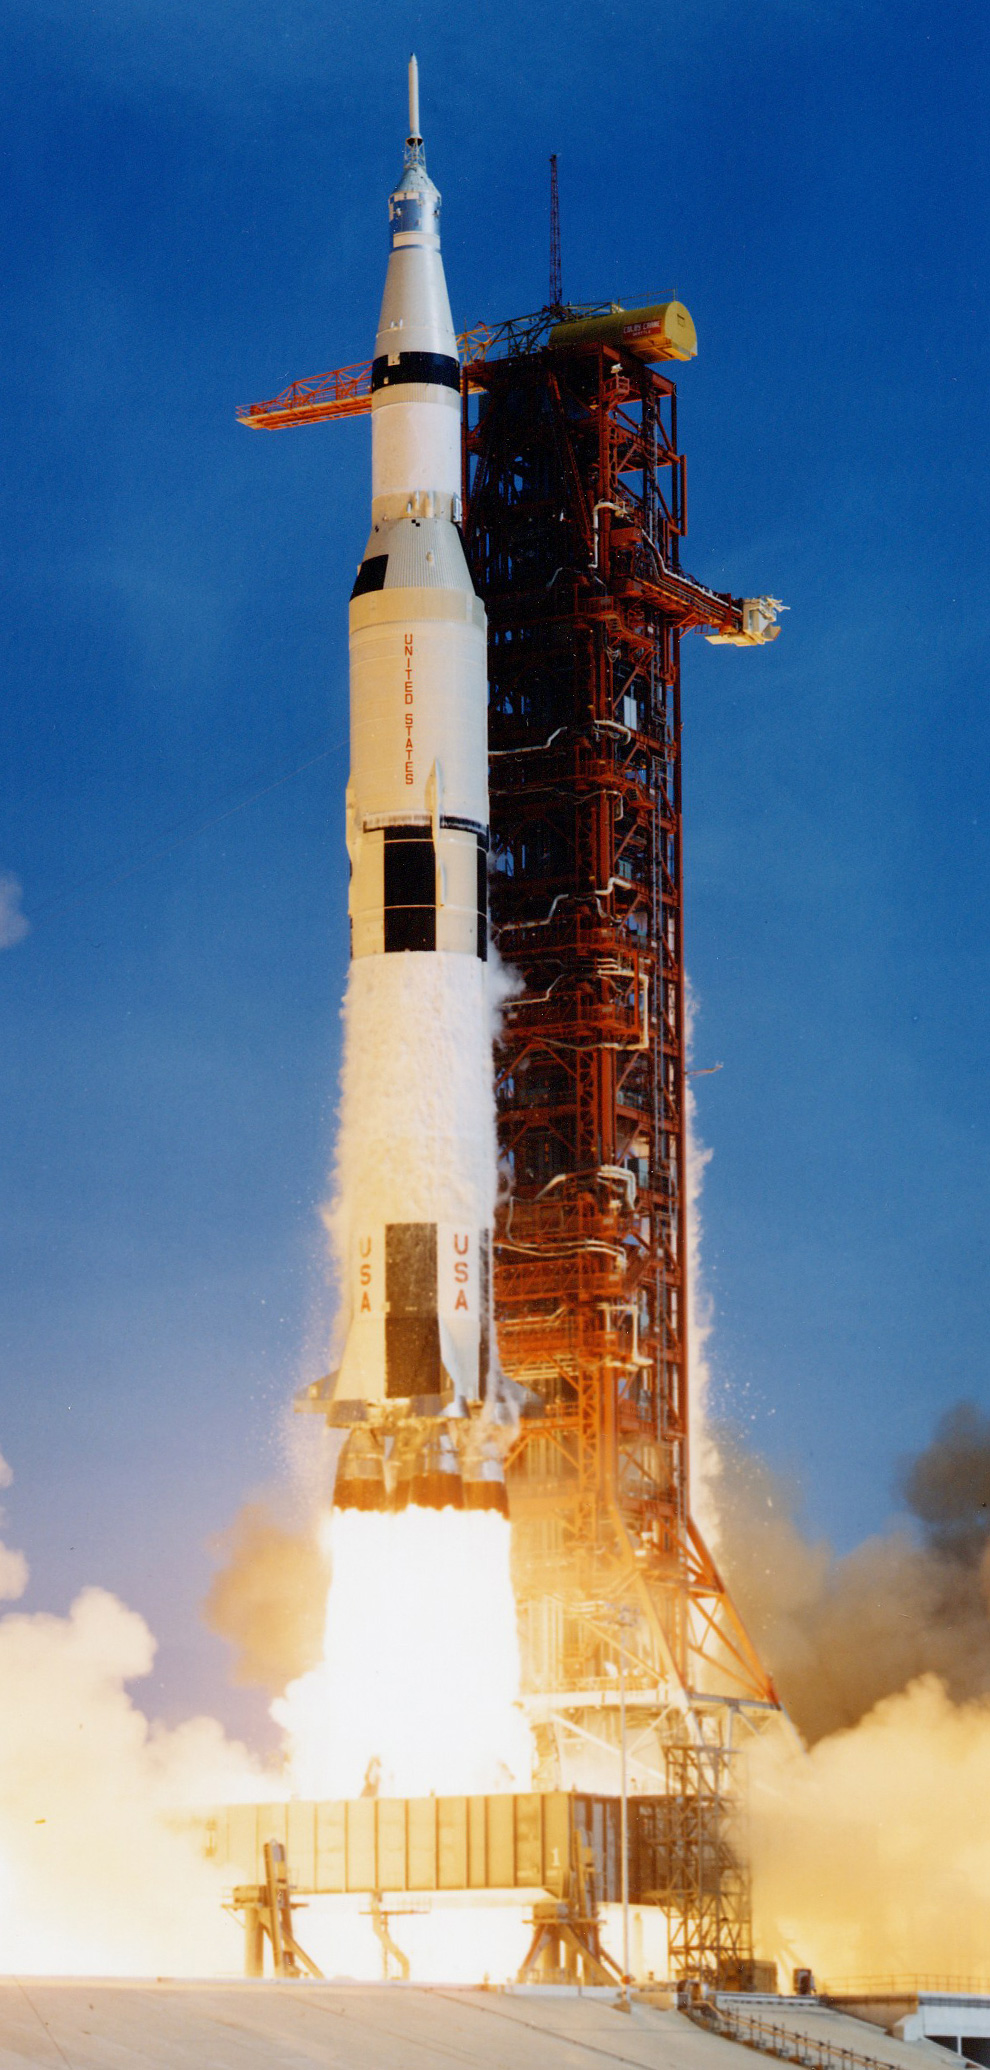 Lift-off of the Saturn V rocket, carrying astronaut Neil Armstrong to the moon